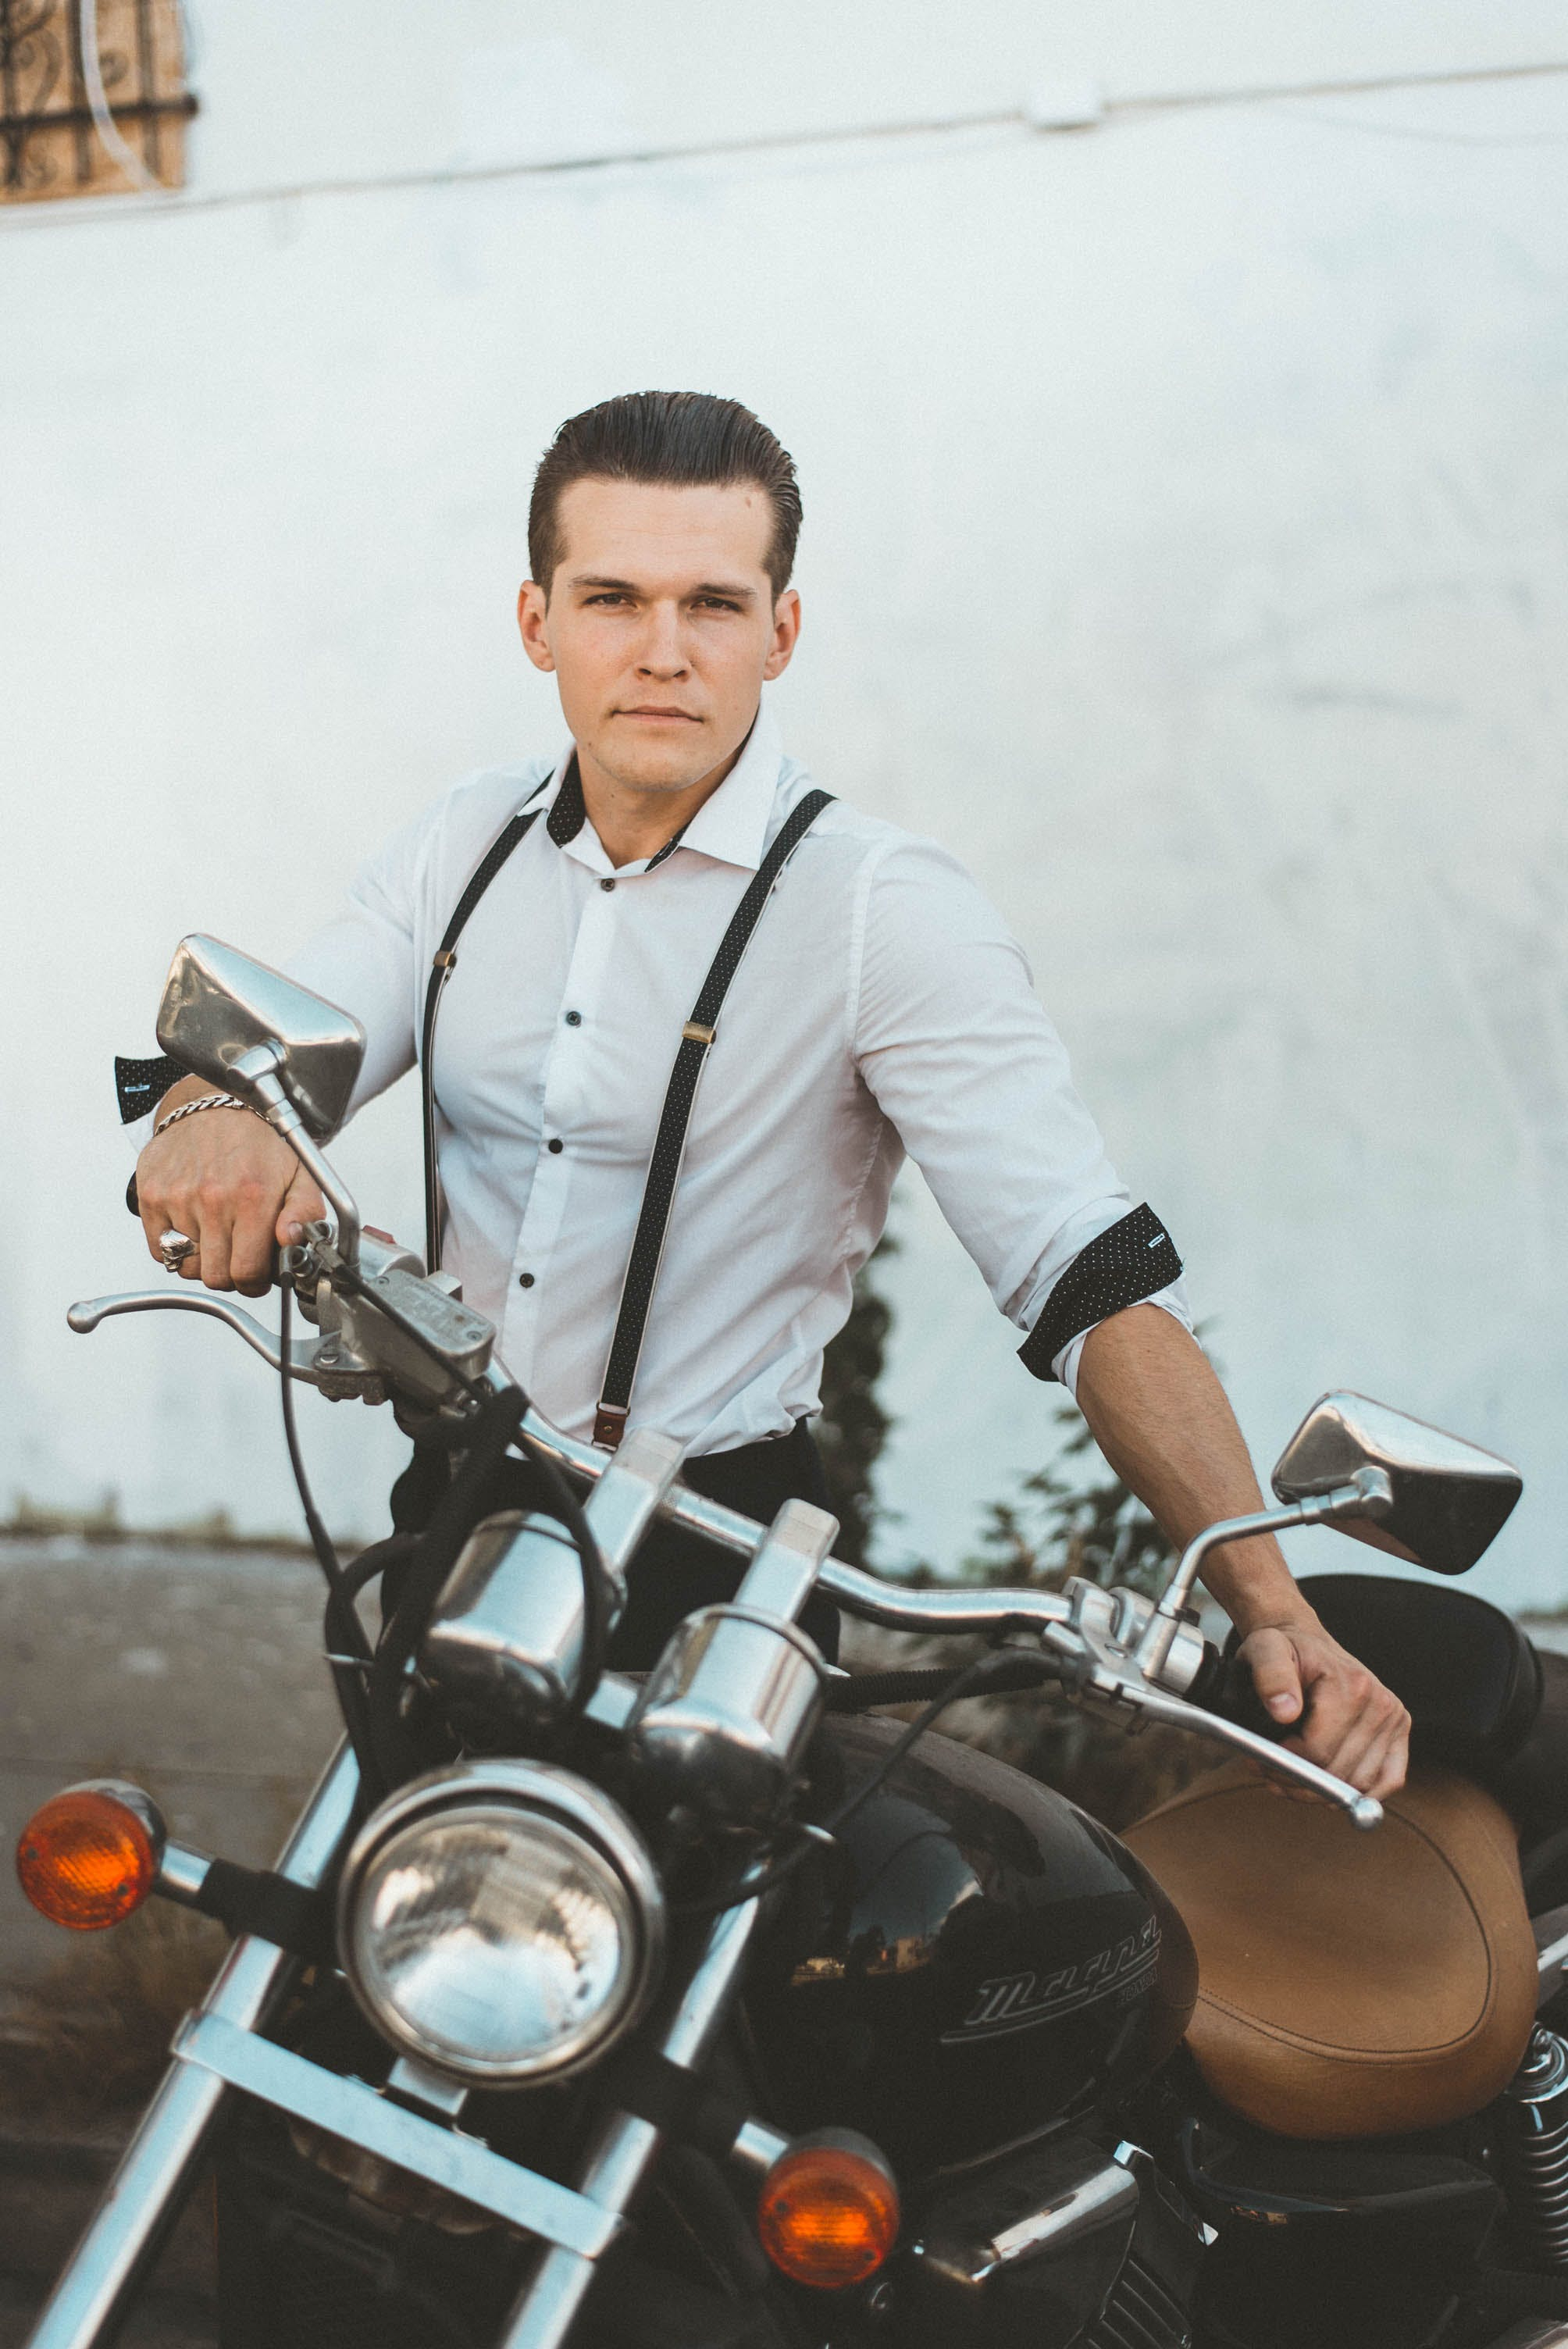 Man in White Dress Shirt Standing Beside Black Motorcycle